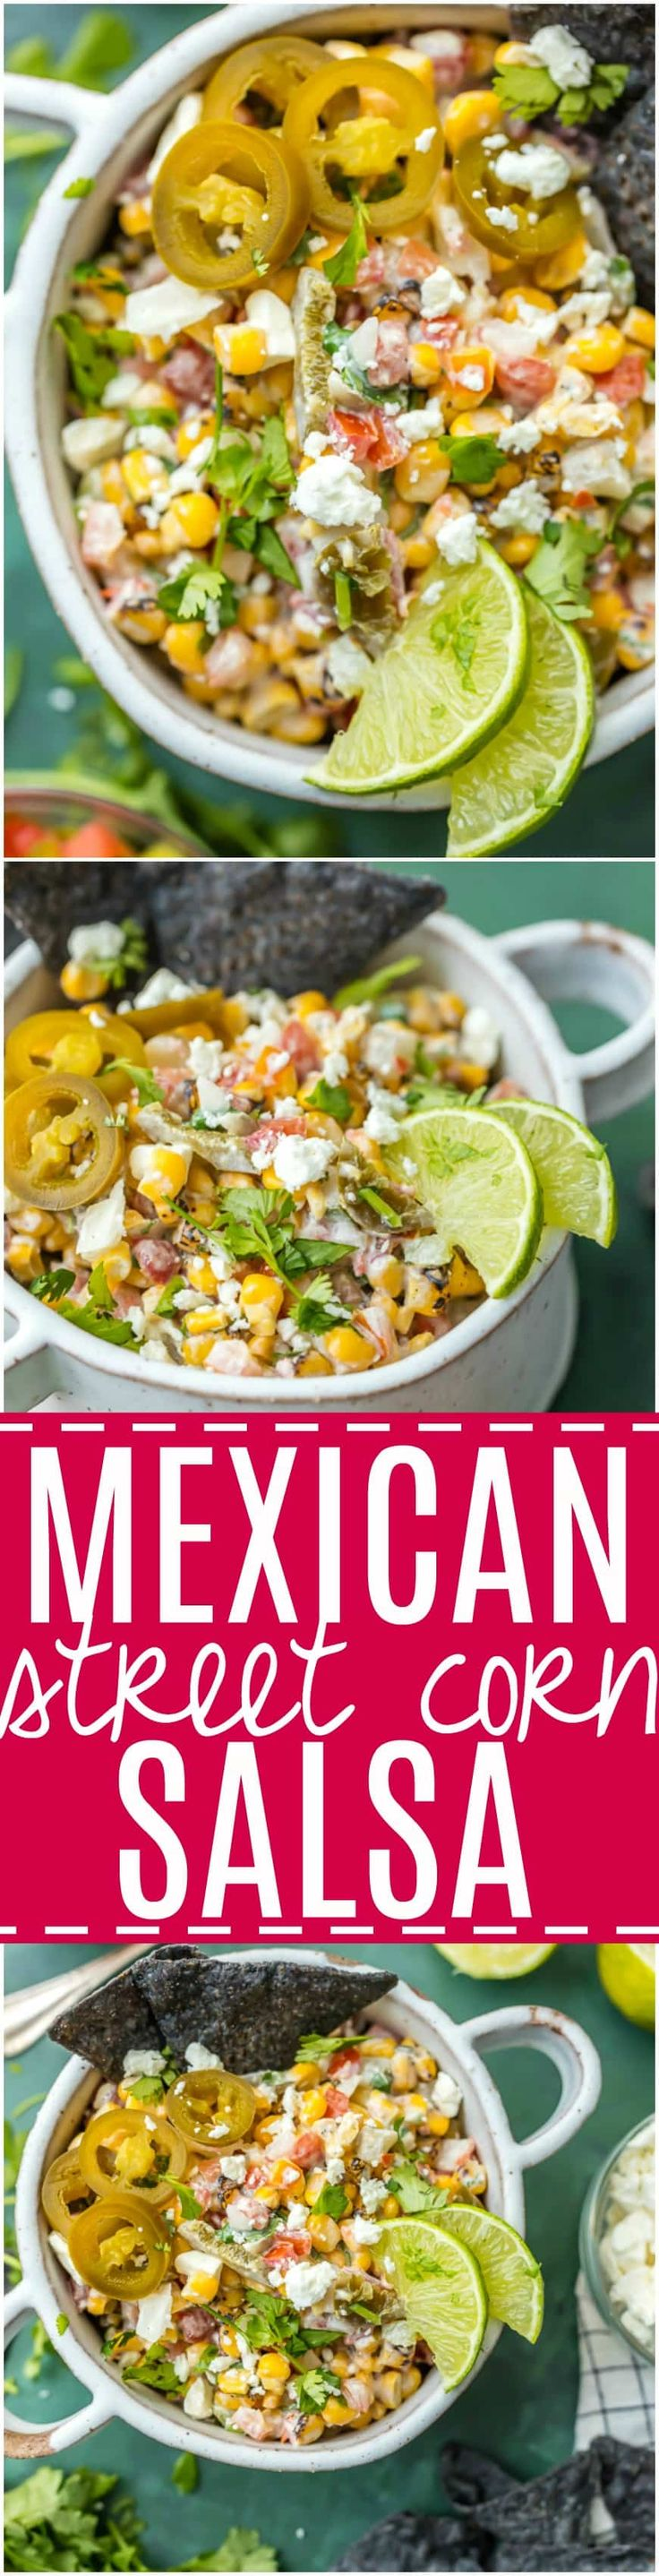 MEXICAN STREET CORN SALSA is my favorite spicy corn dip, just perfect for every occasion! Roasted corn, feta, lime juice, sour cream, cilantro, pico de gallo, and more! via @beckygallhardin